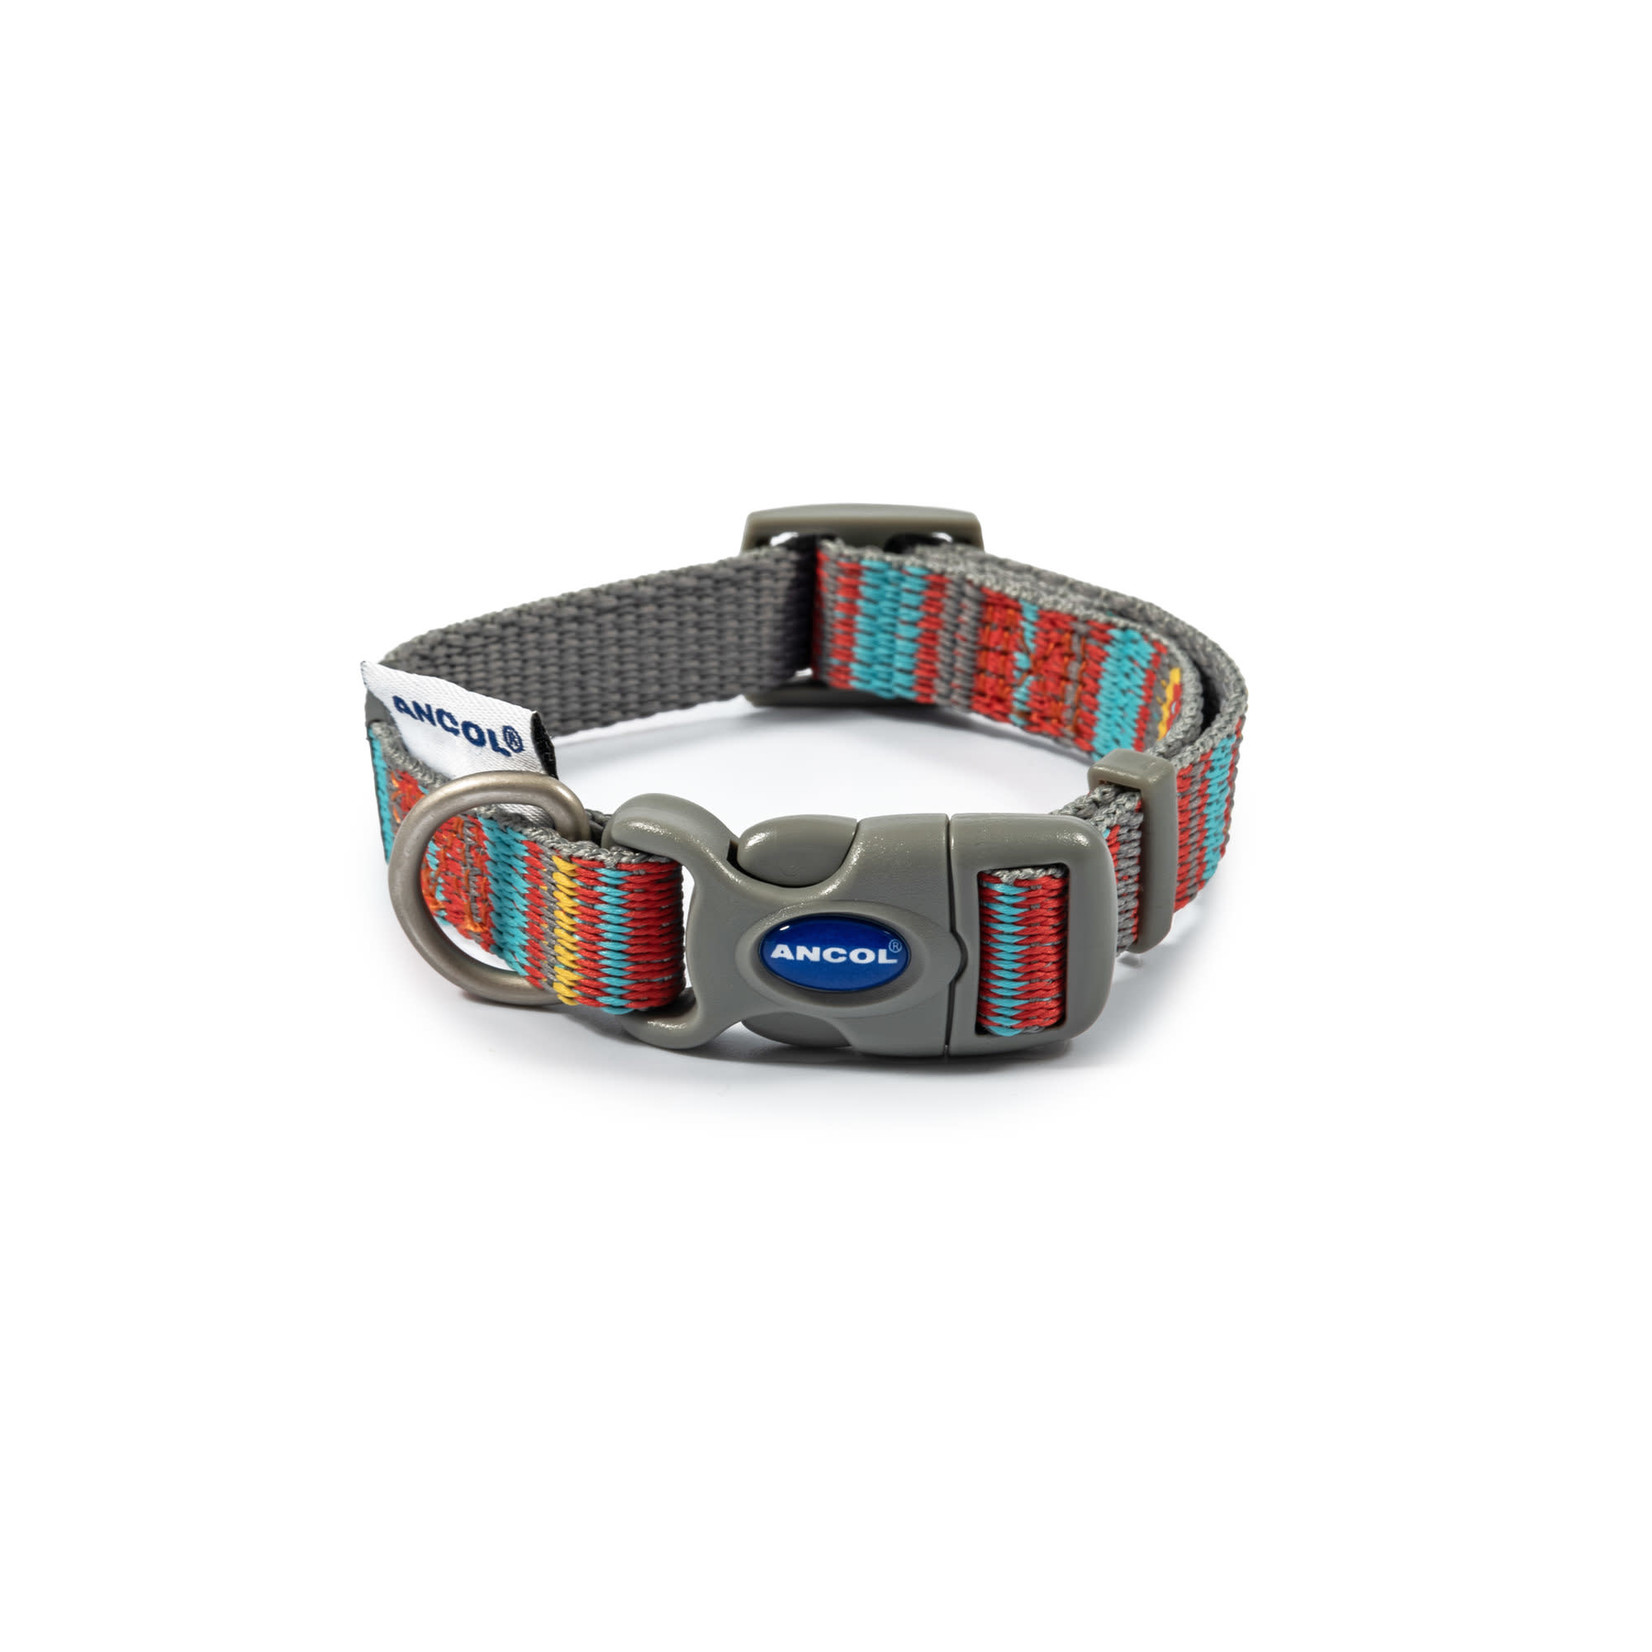 Ancol Adjustable Dog Collar Made From Recycled Materials, Orange Candy Stripe